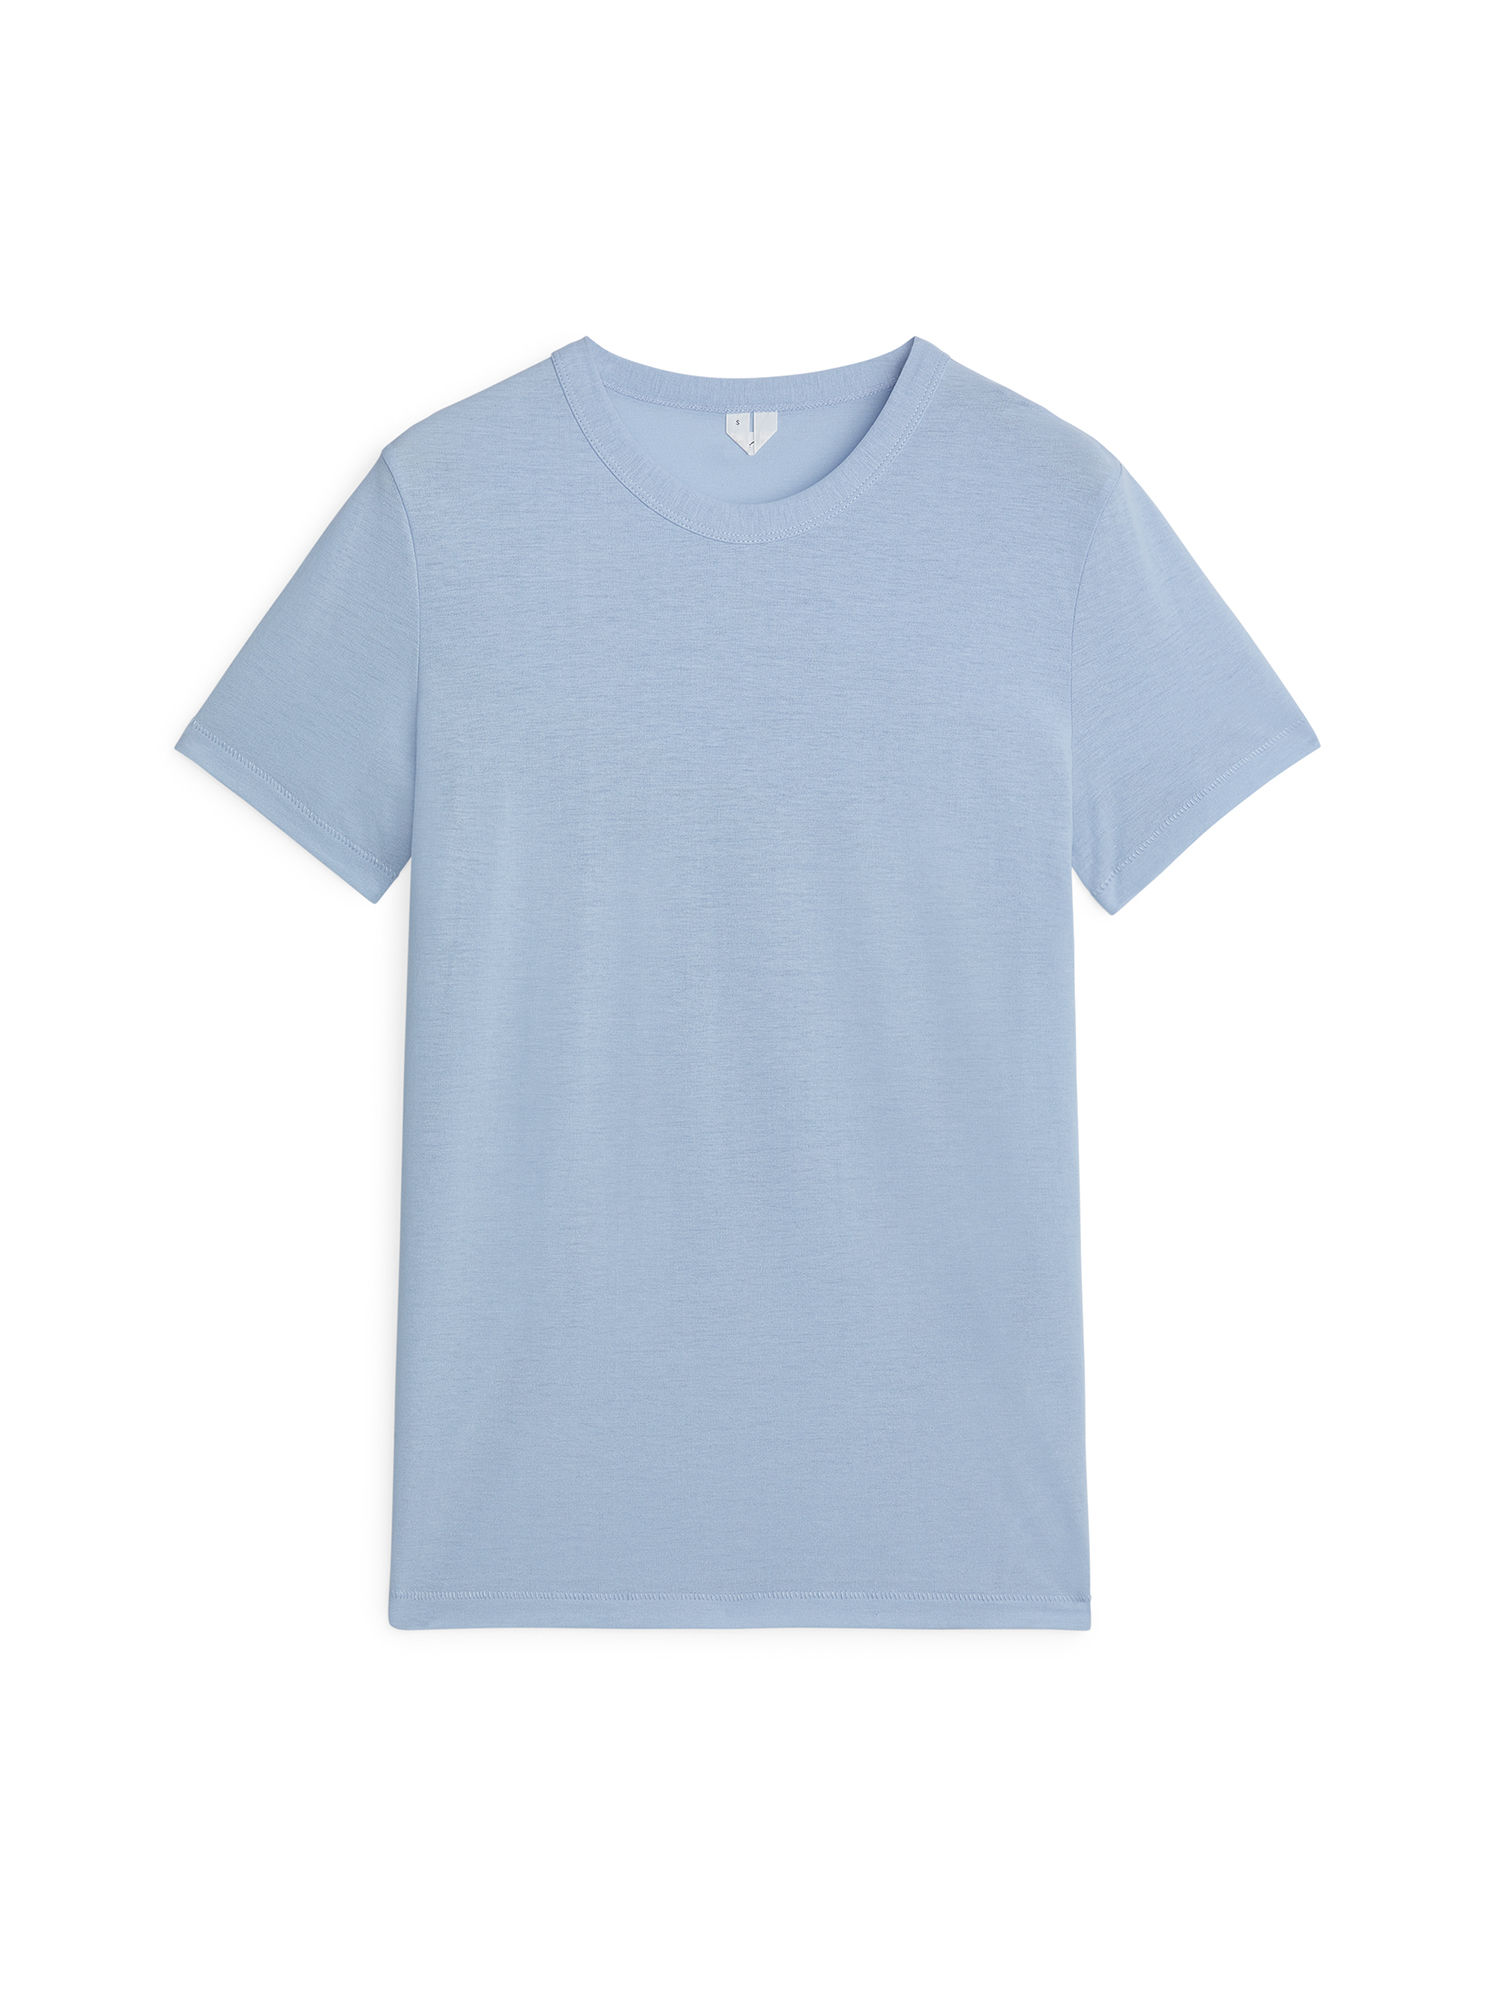 Fabric Swatch image of Arket ice crepe t-shirt in blue